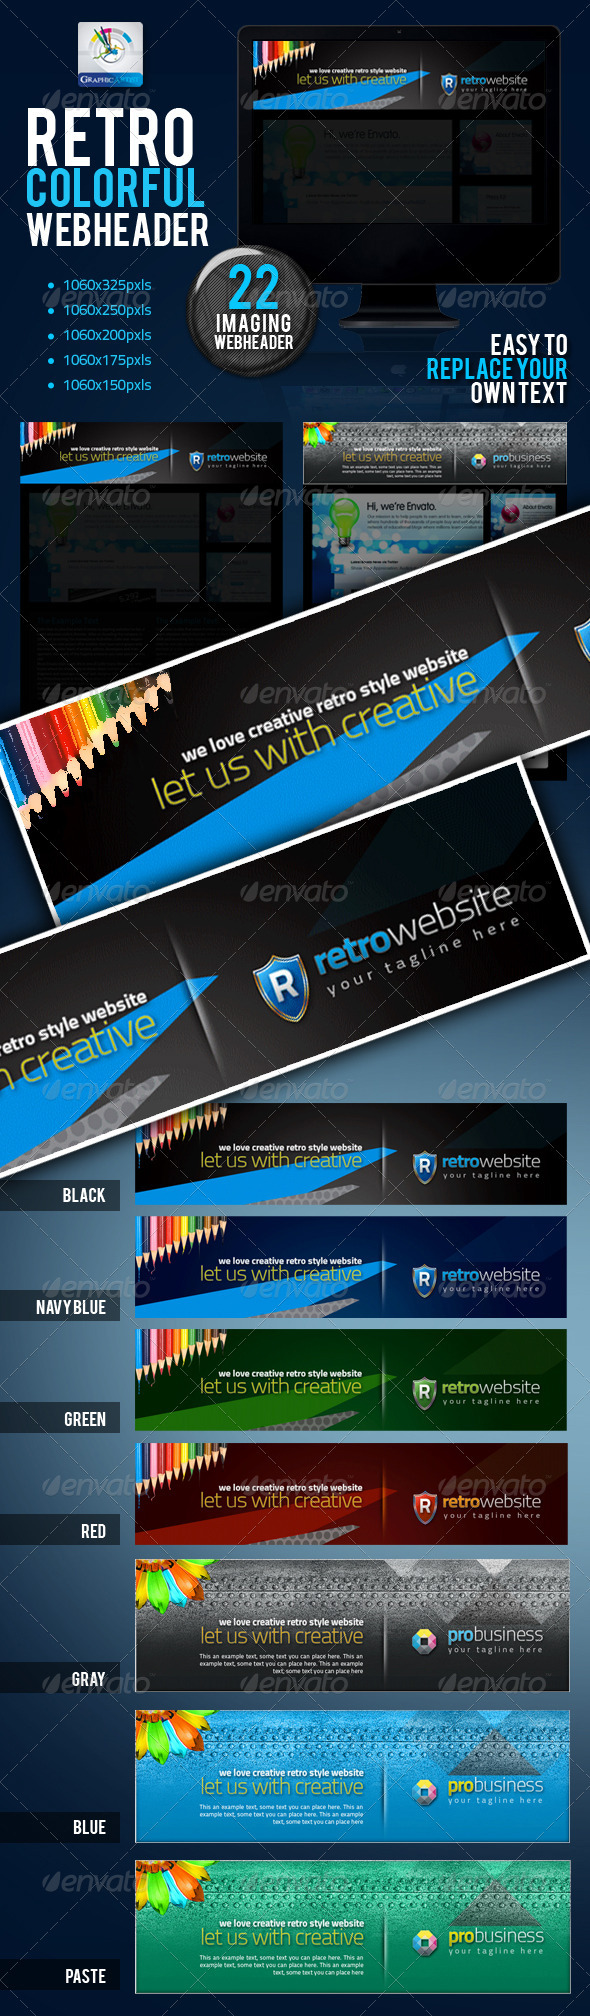 Retro Colorful Website Headers Set - Banners & Ads Web Elements